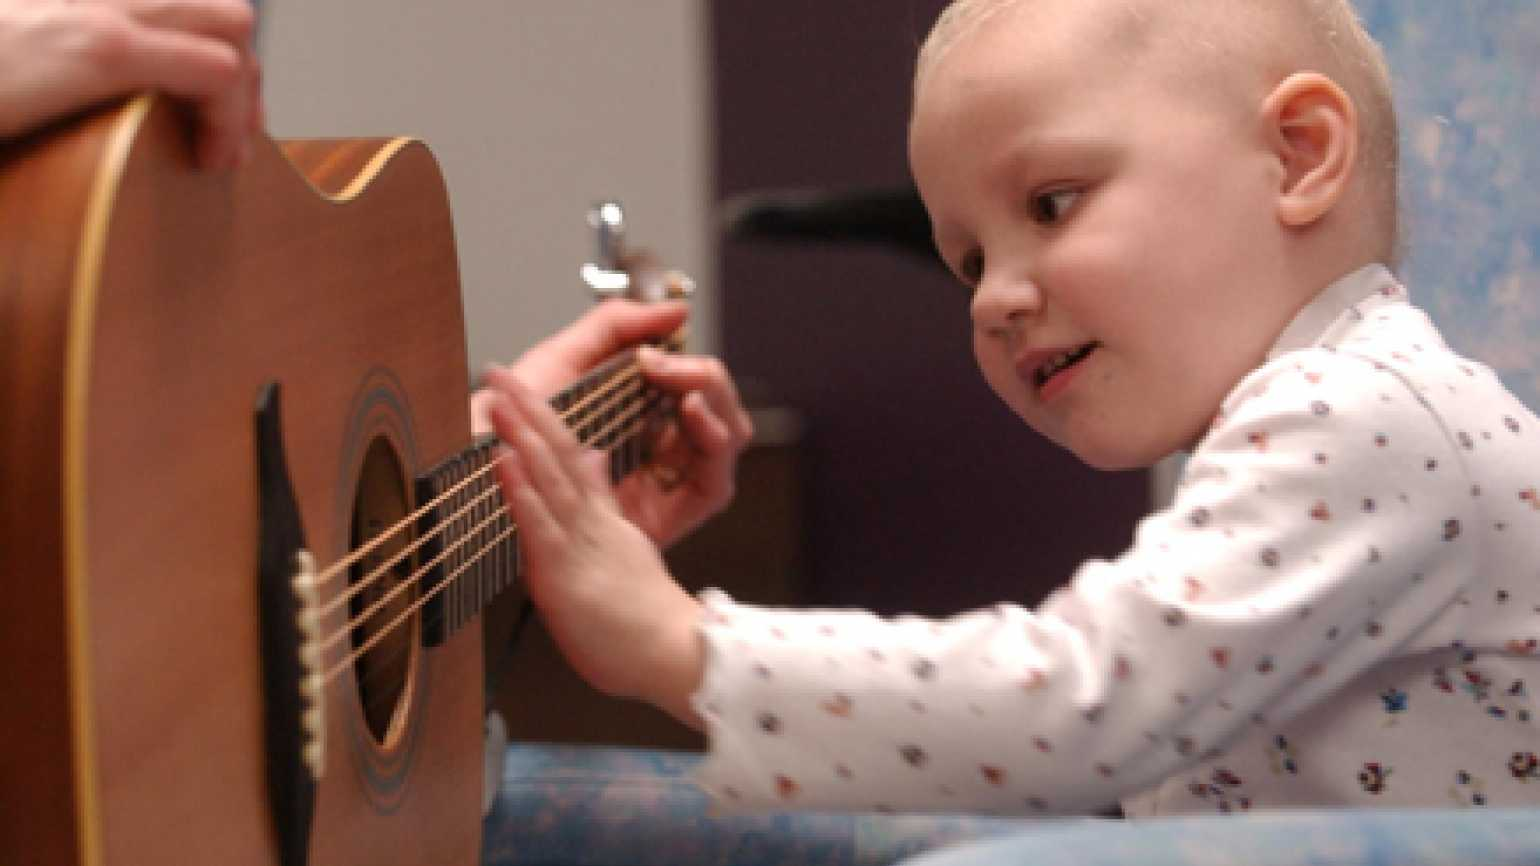 Inspiring story of how music heals patients